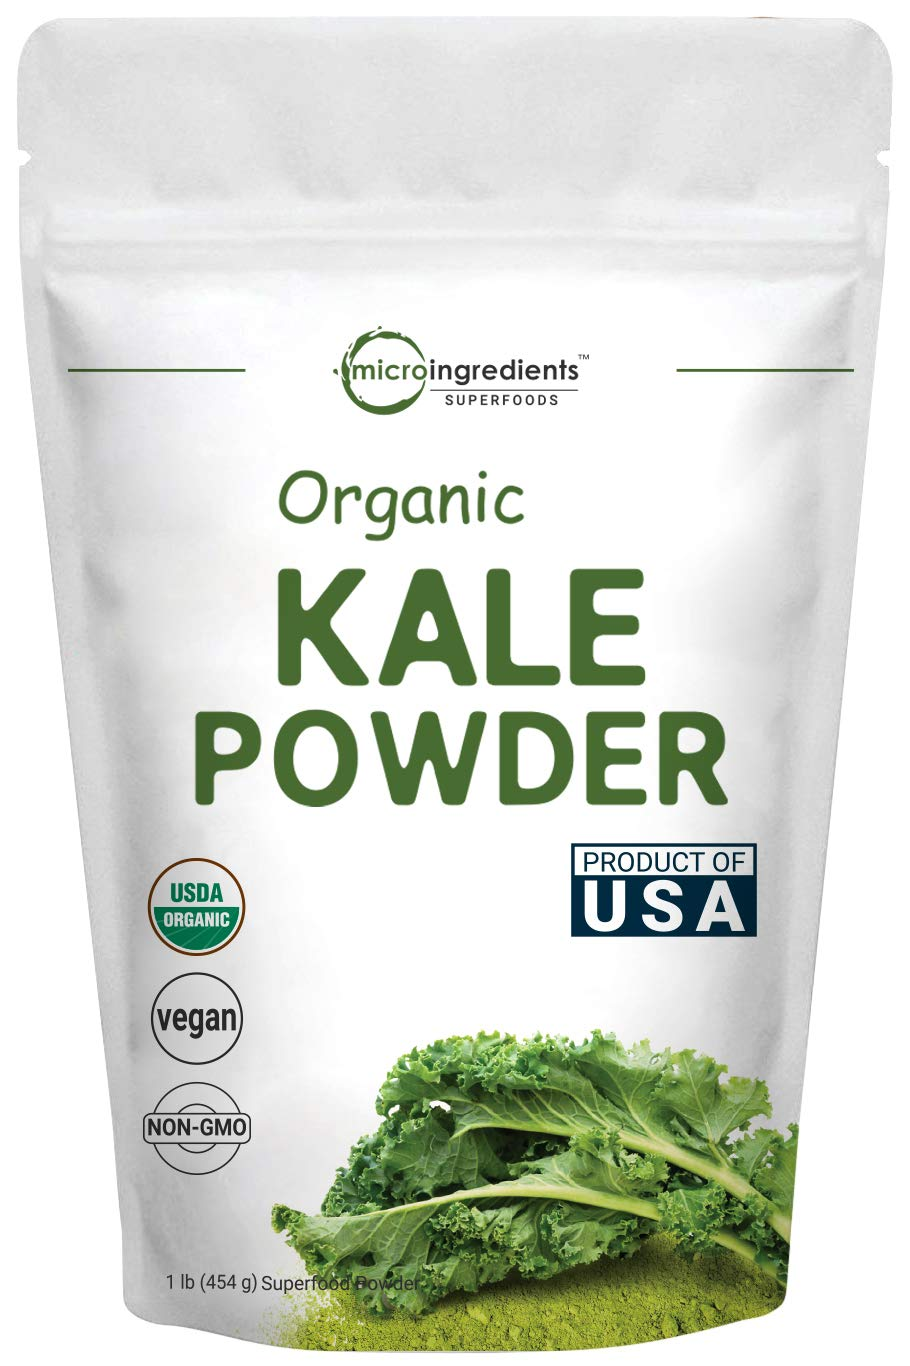 Sustainably US Grown, Kale Powder Organic, 1 Pound (90 Servings), Contains Immune Vitamin C to Support Immune System, Green Superfood for Overall and Liver Health, No GMOs and Vegan Friendly